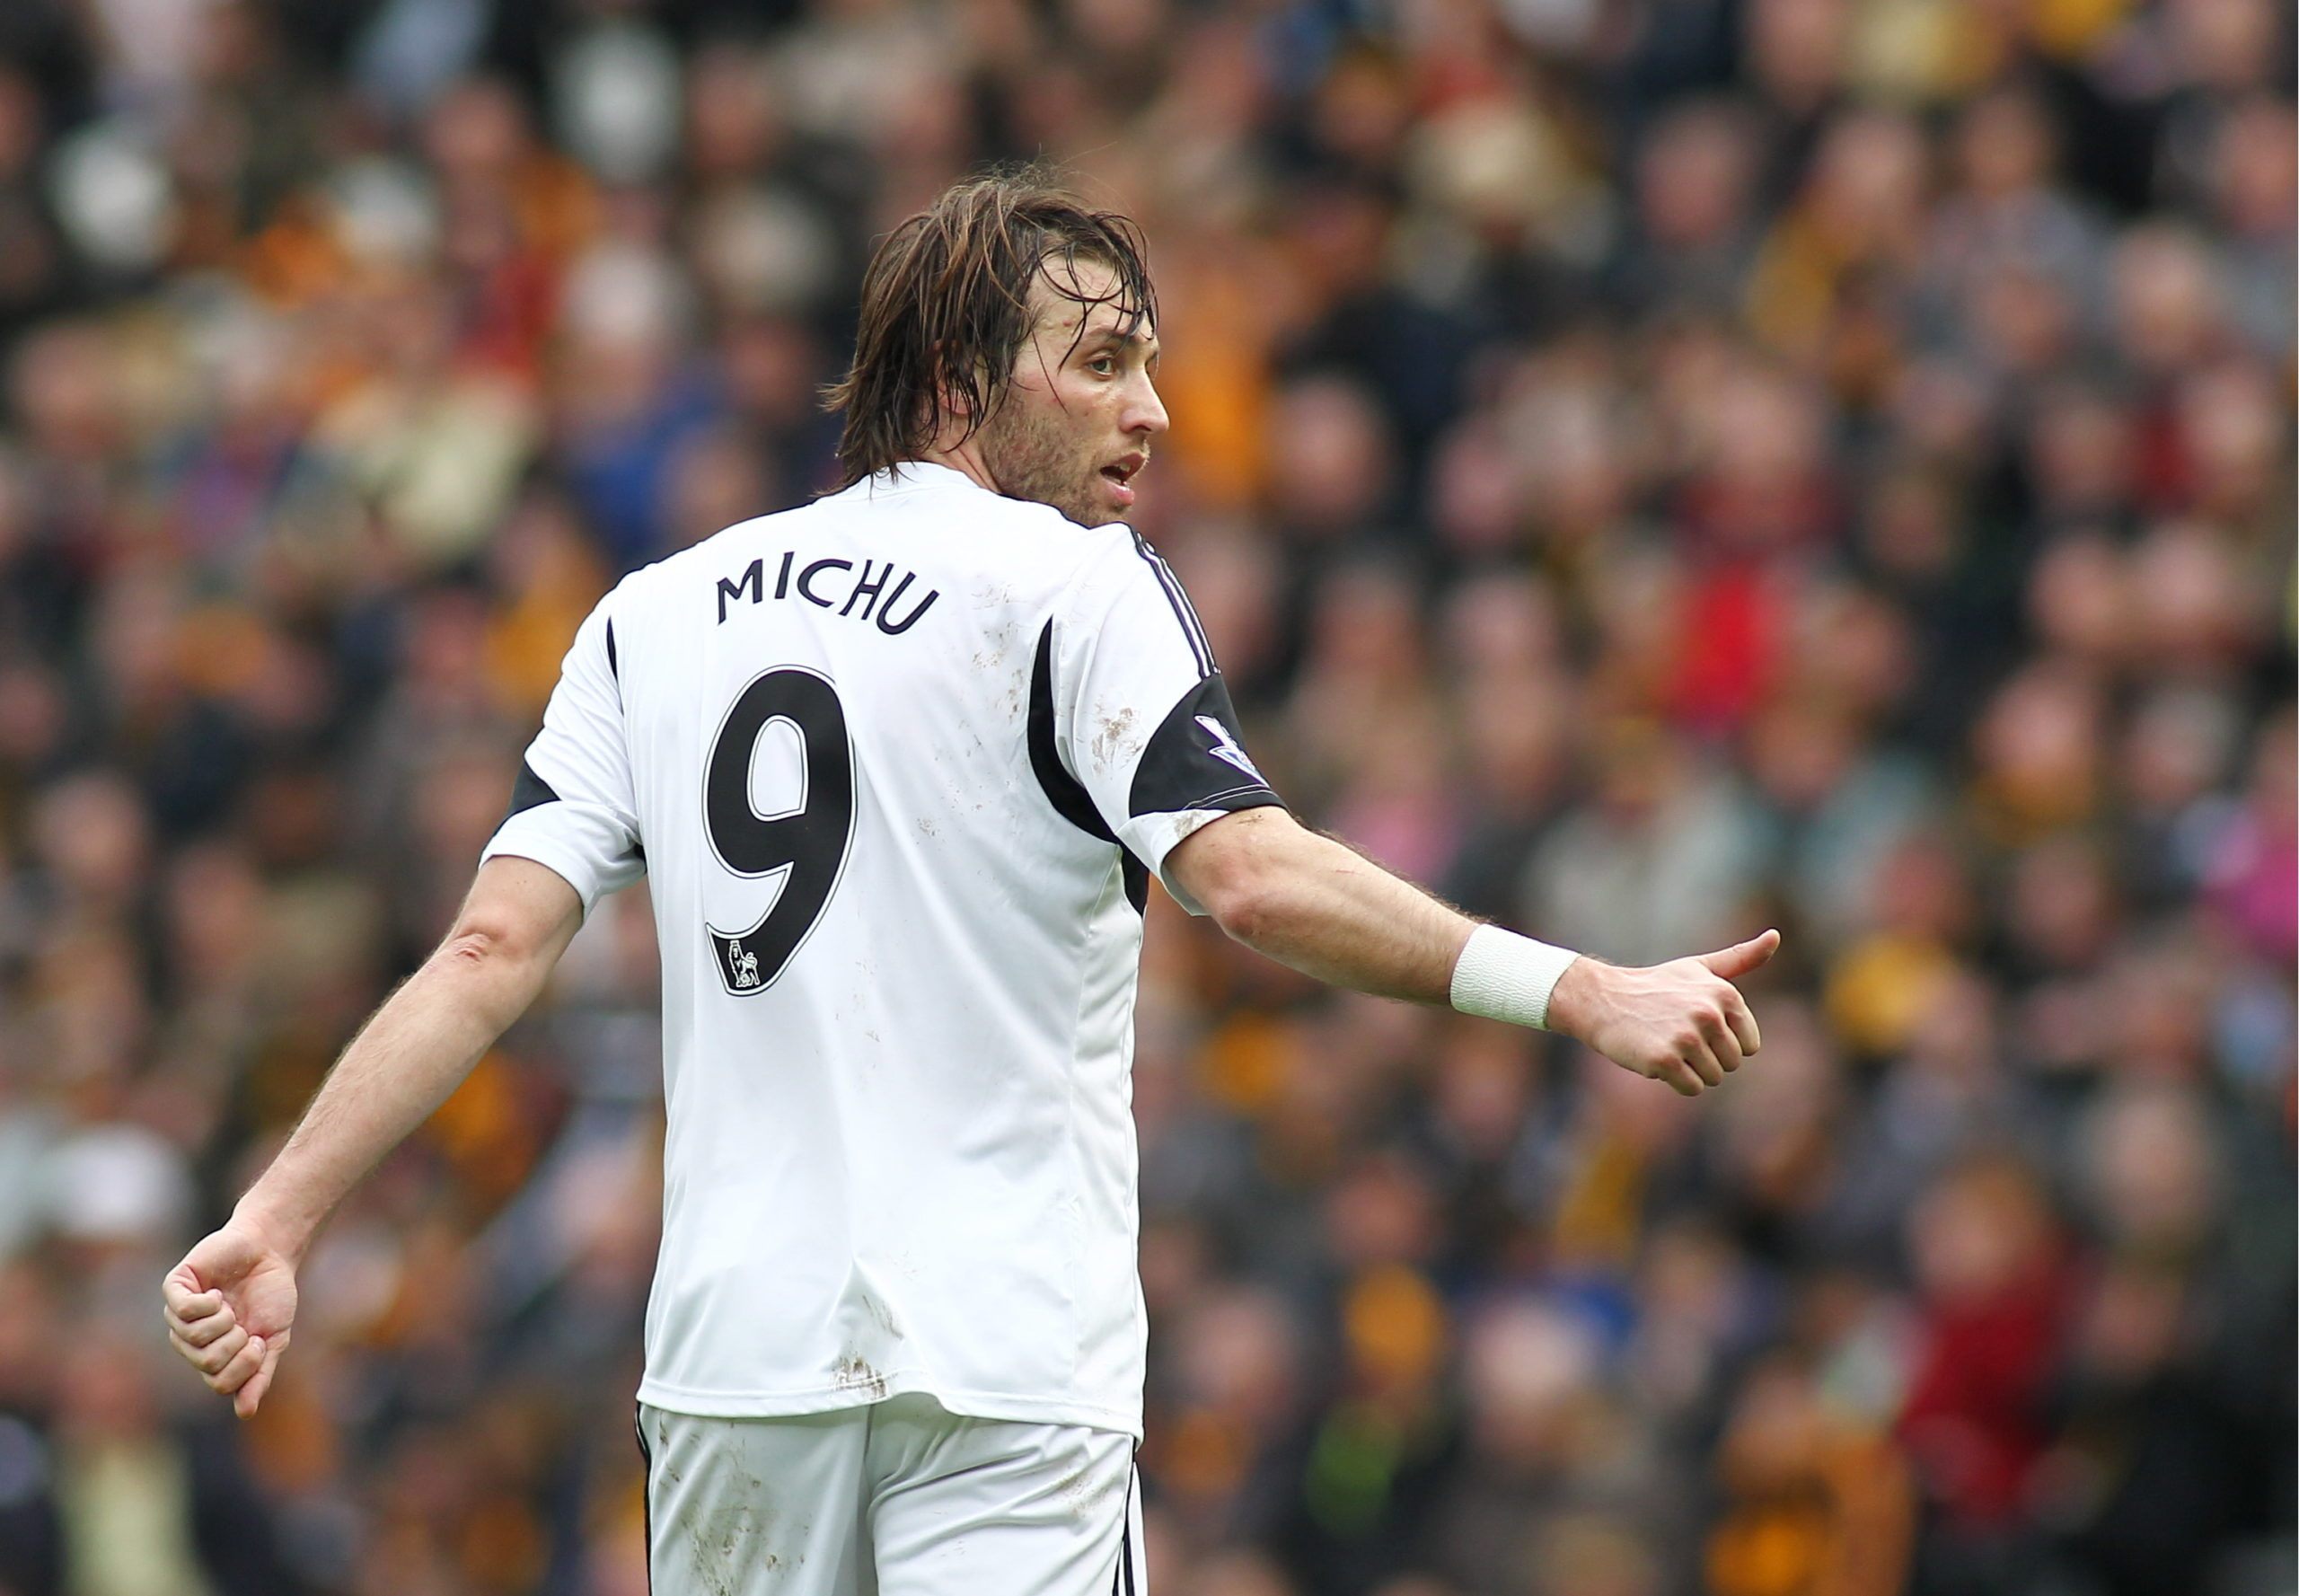 → Michu scored 18 goals in his debut Premier League season. What was his FPL starting price?